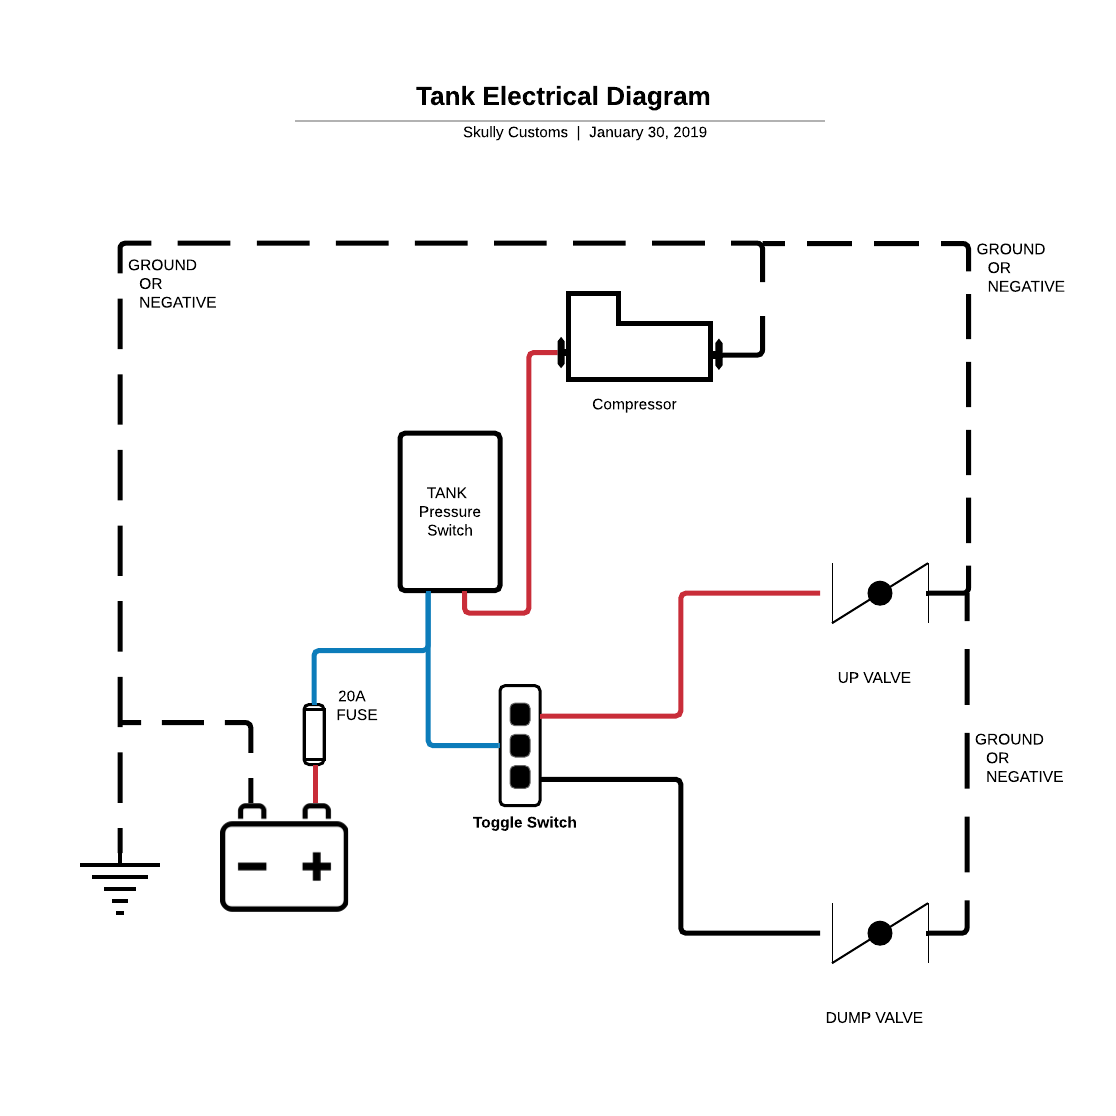 hight resolution of fast up tank with toggle switch